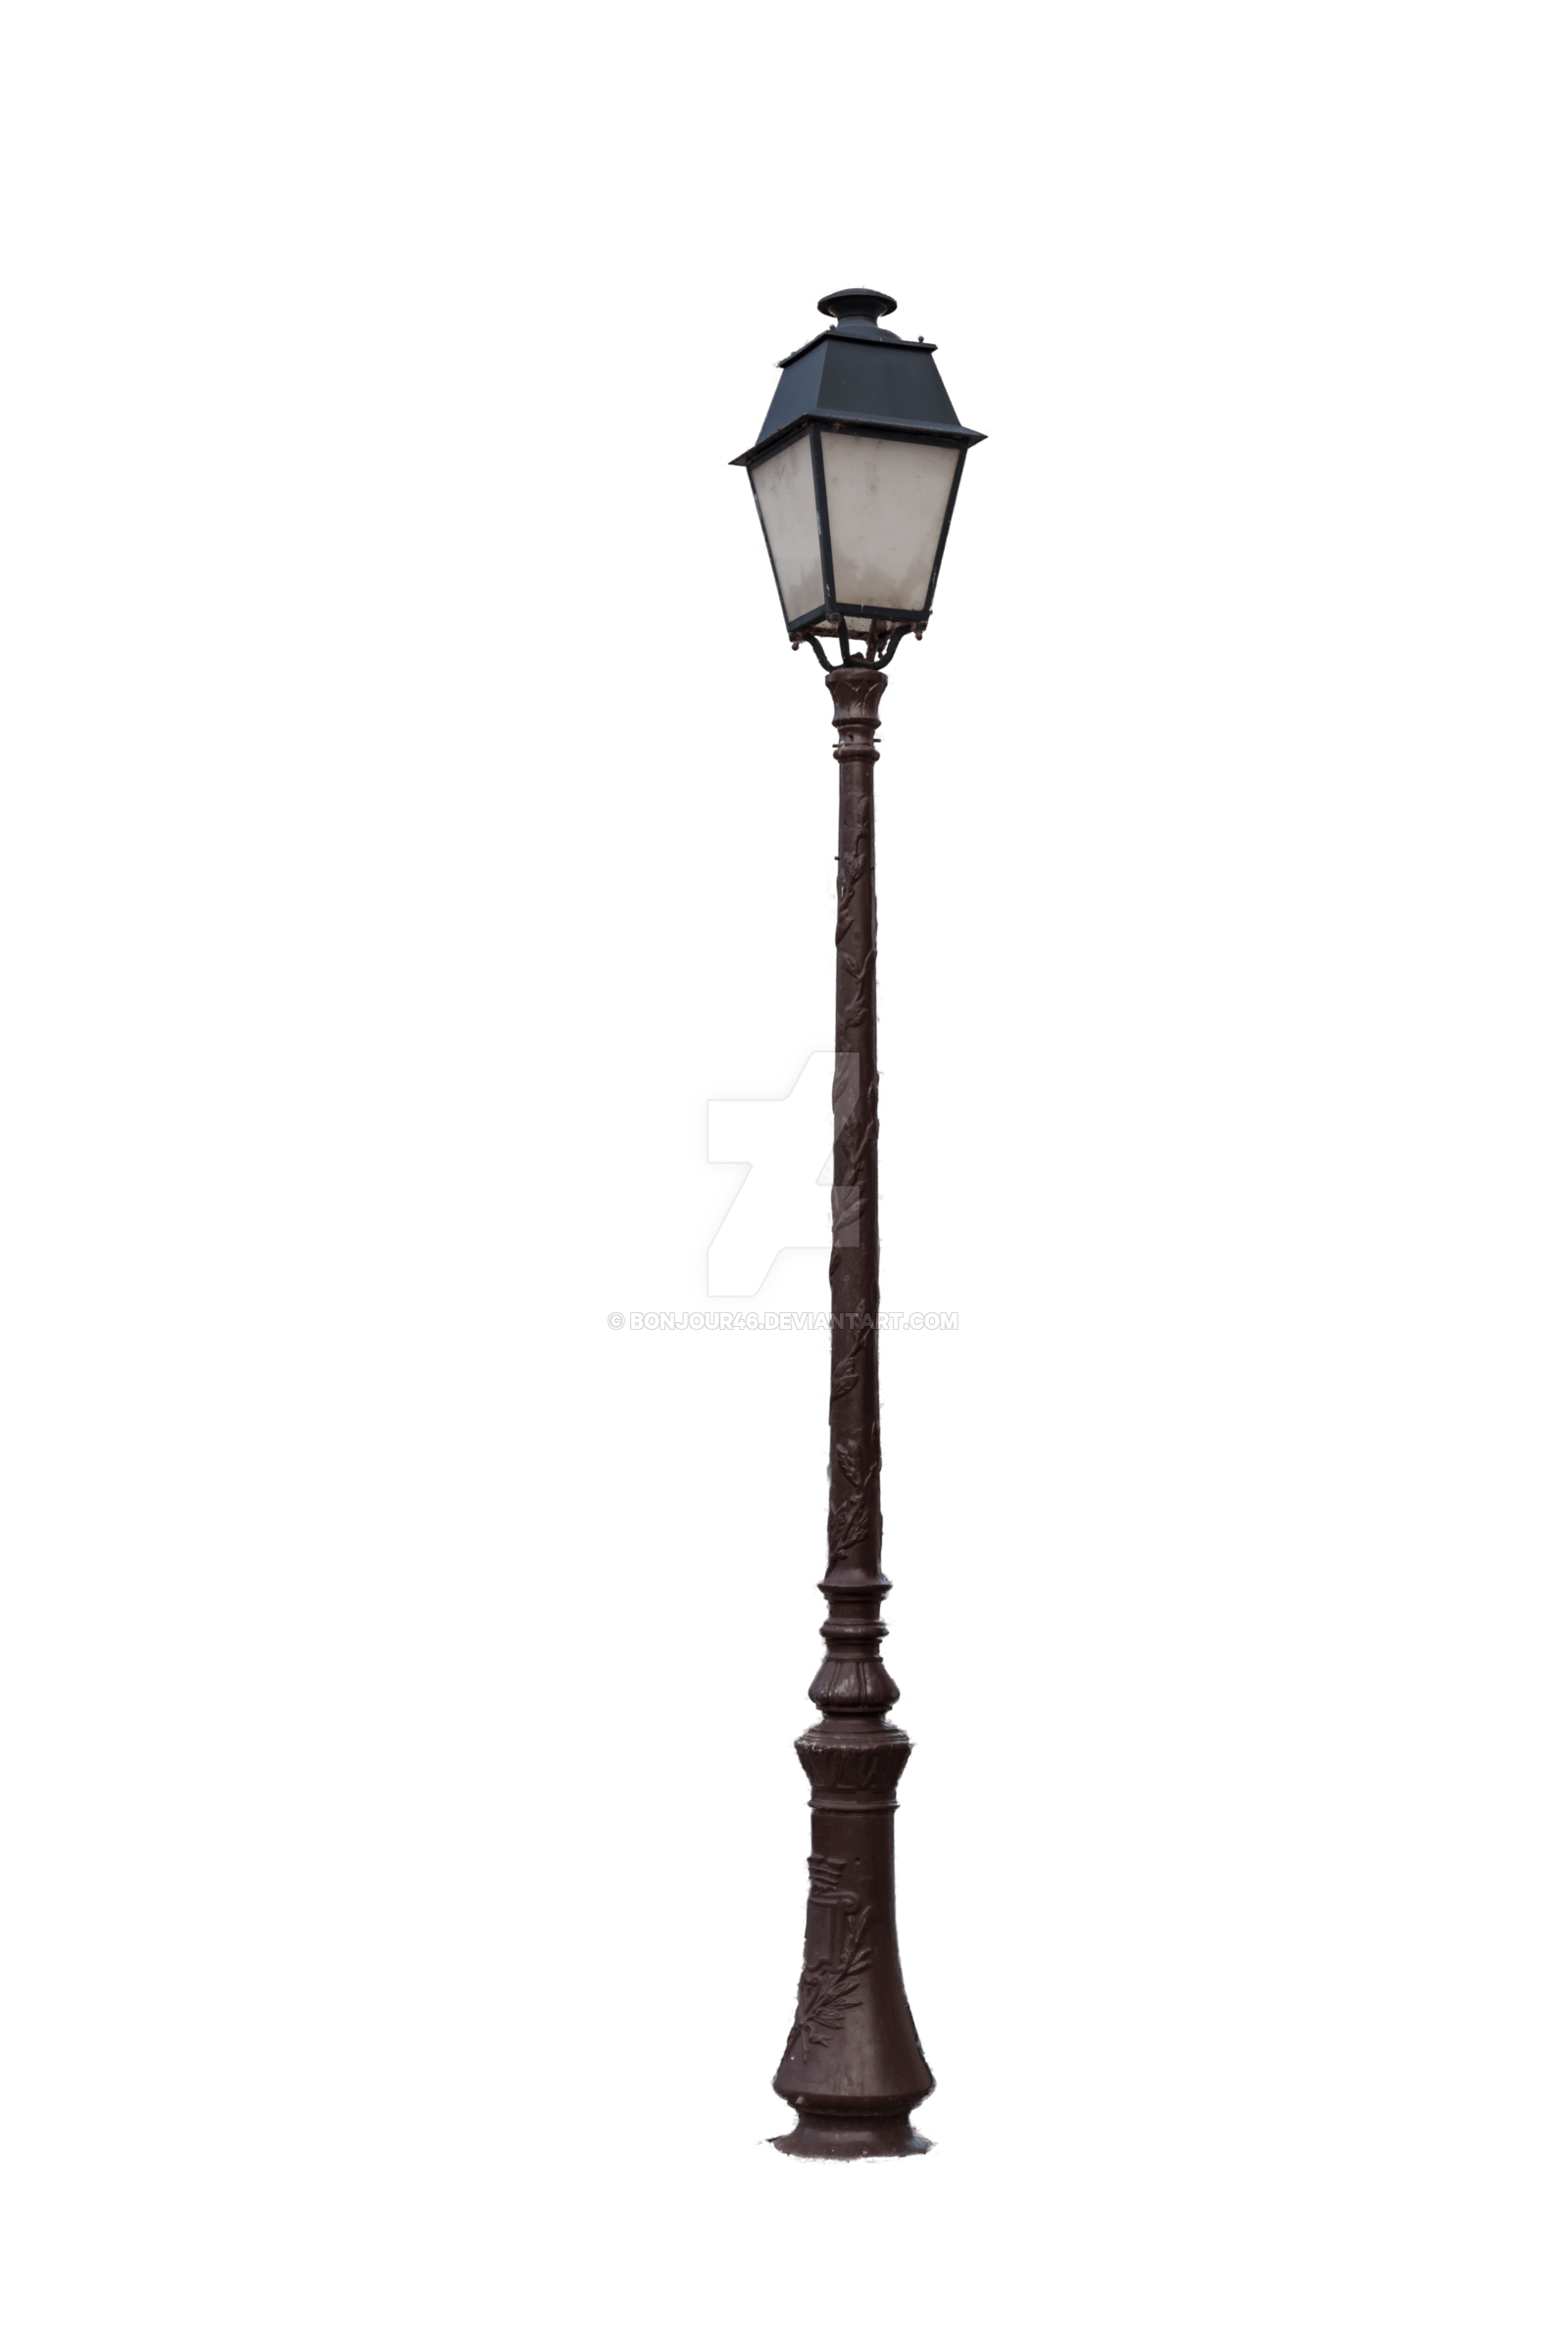 Png Lamp Post Transparent Lamp Post Png Images Pluspng